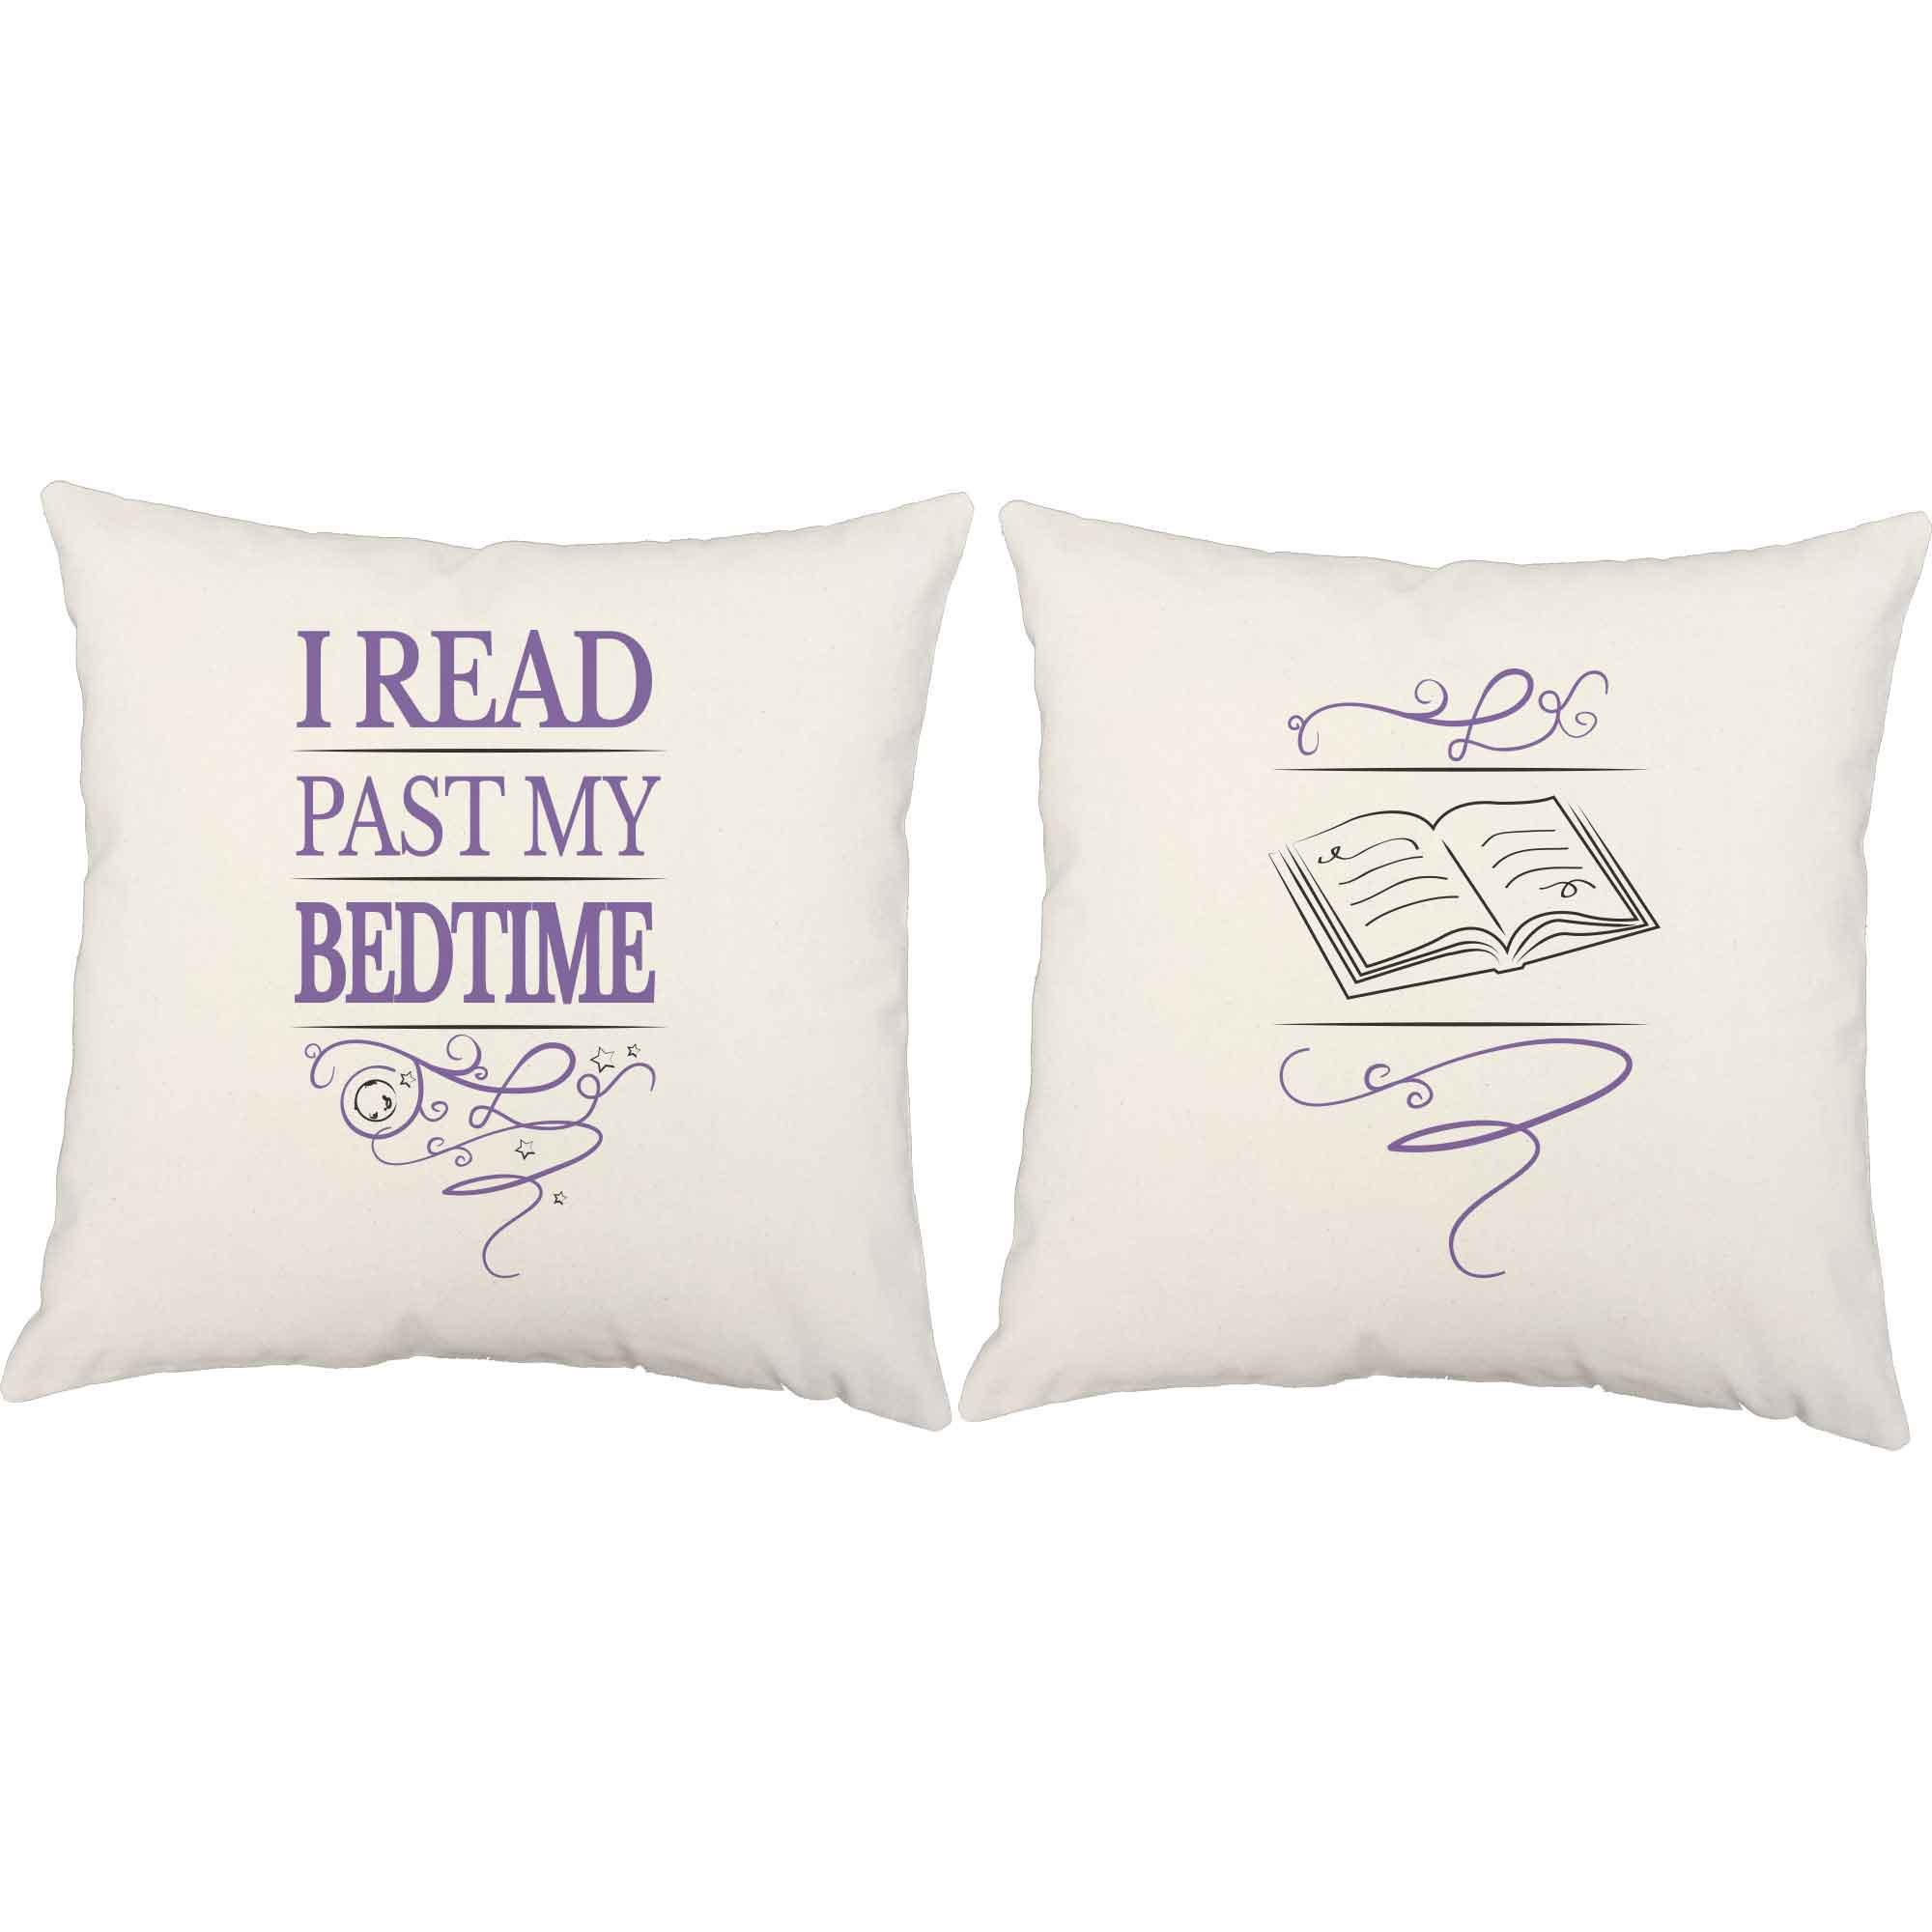 Set of 2 RoomCraft I Read Past My Bedtime Throw Pillows 20x20 Square White Indoor-Outdoor Reading Books Cushions